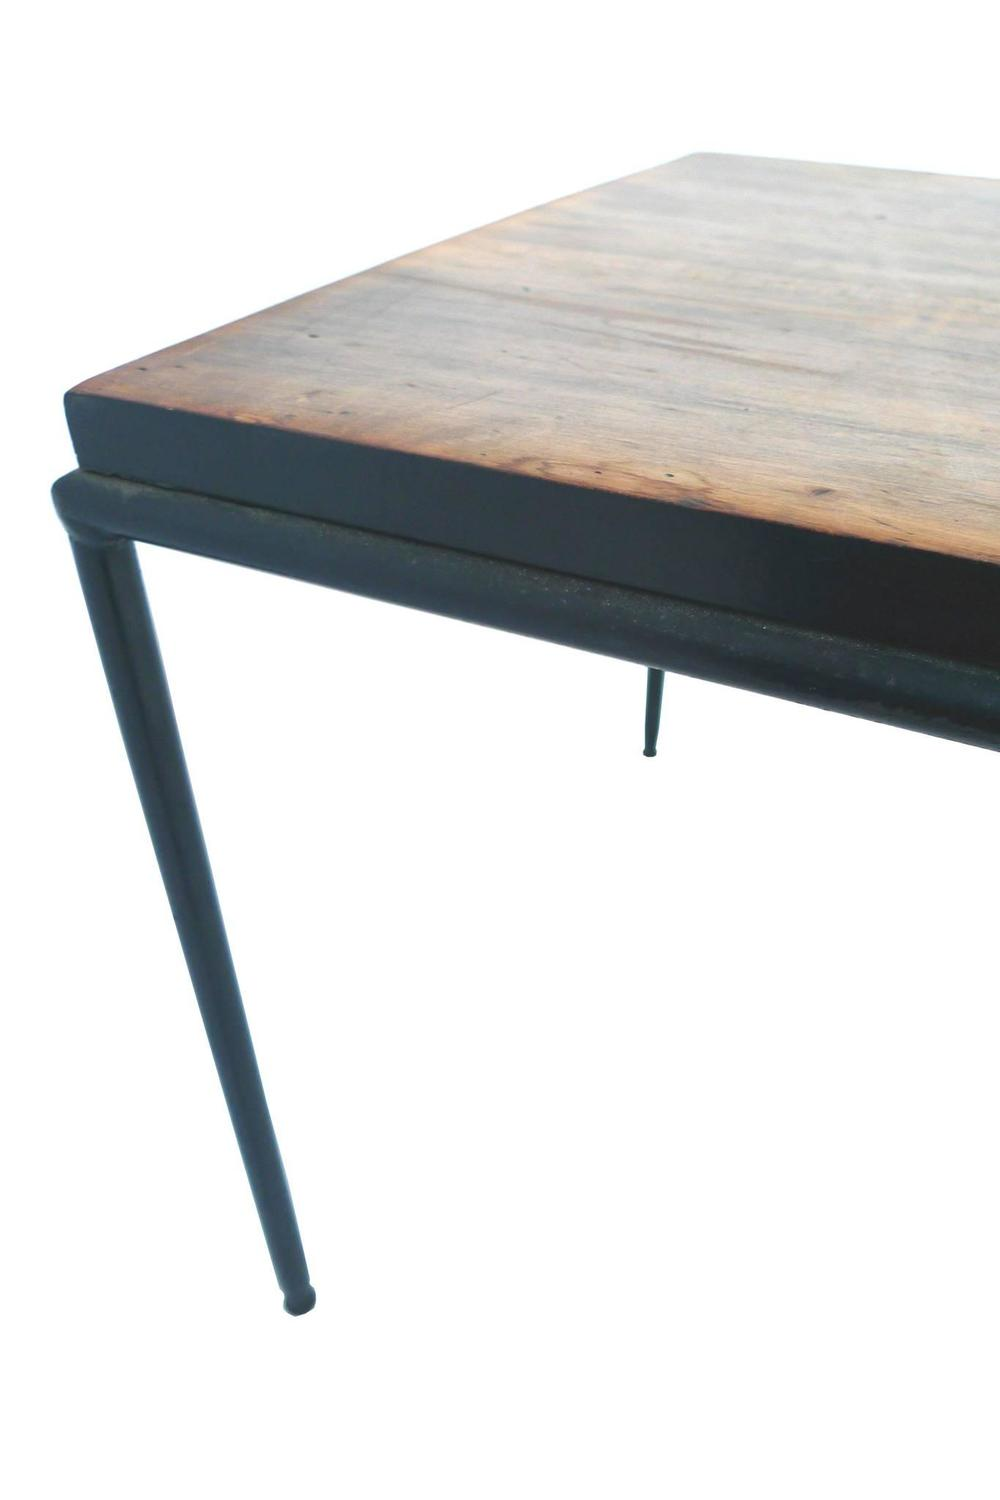 Paul Mccobb Wrought Iron And Teak Coffee Table At 1stdibs